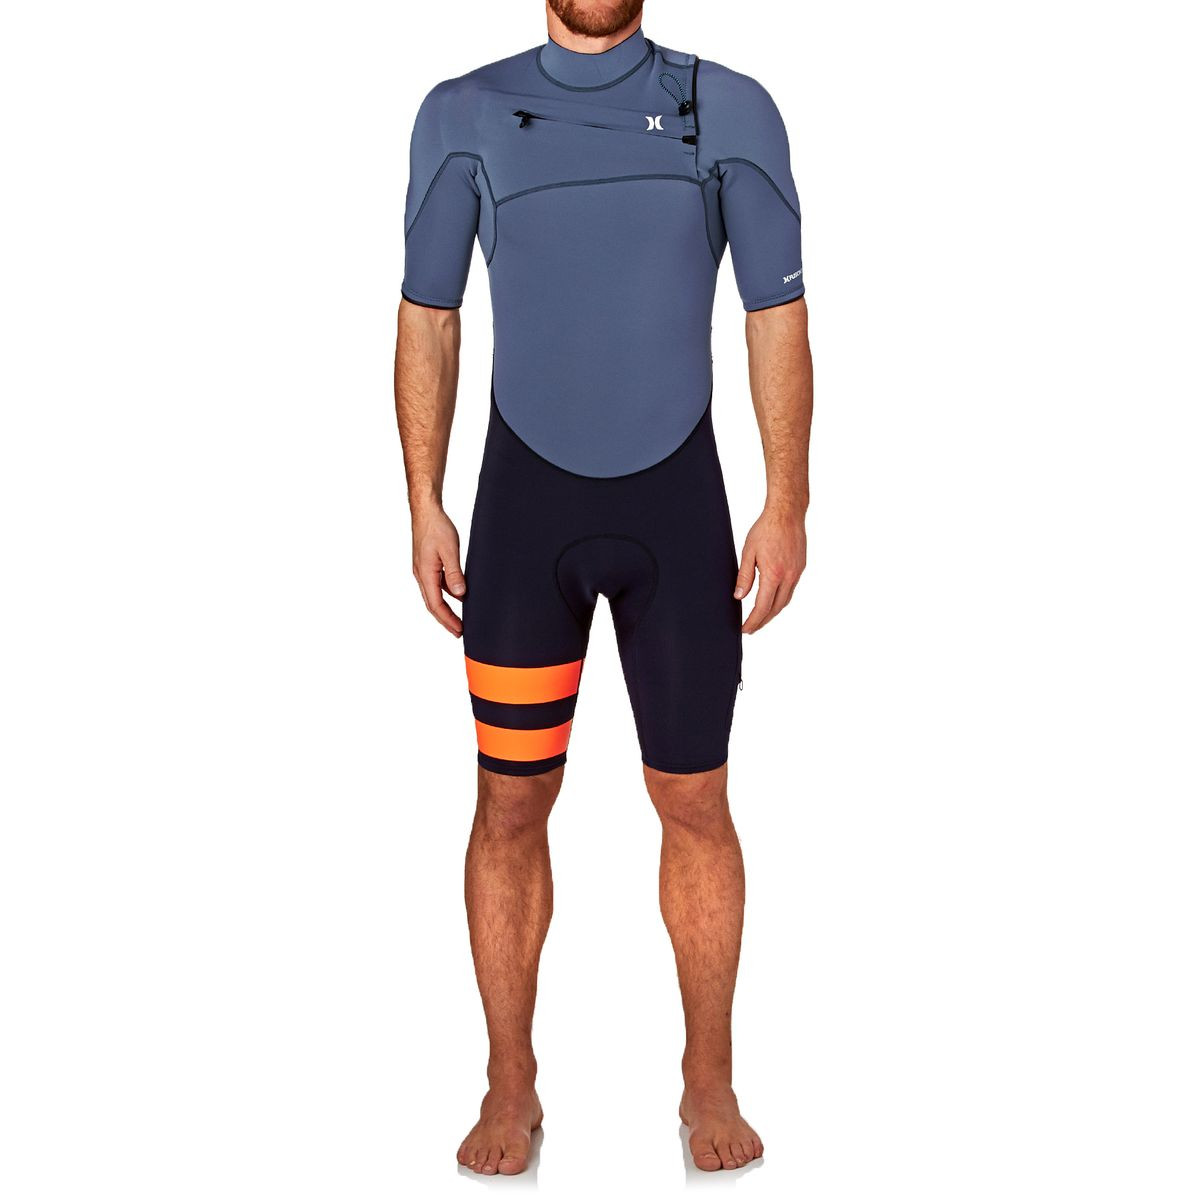 Hurley Fusion 2mm 2017 Chest Zip Short Sleeve Shorty Wetsuit - Obsidian